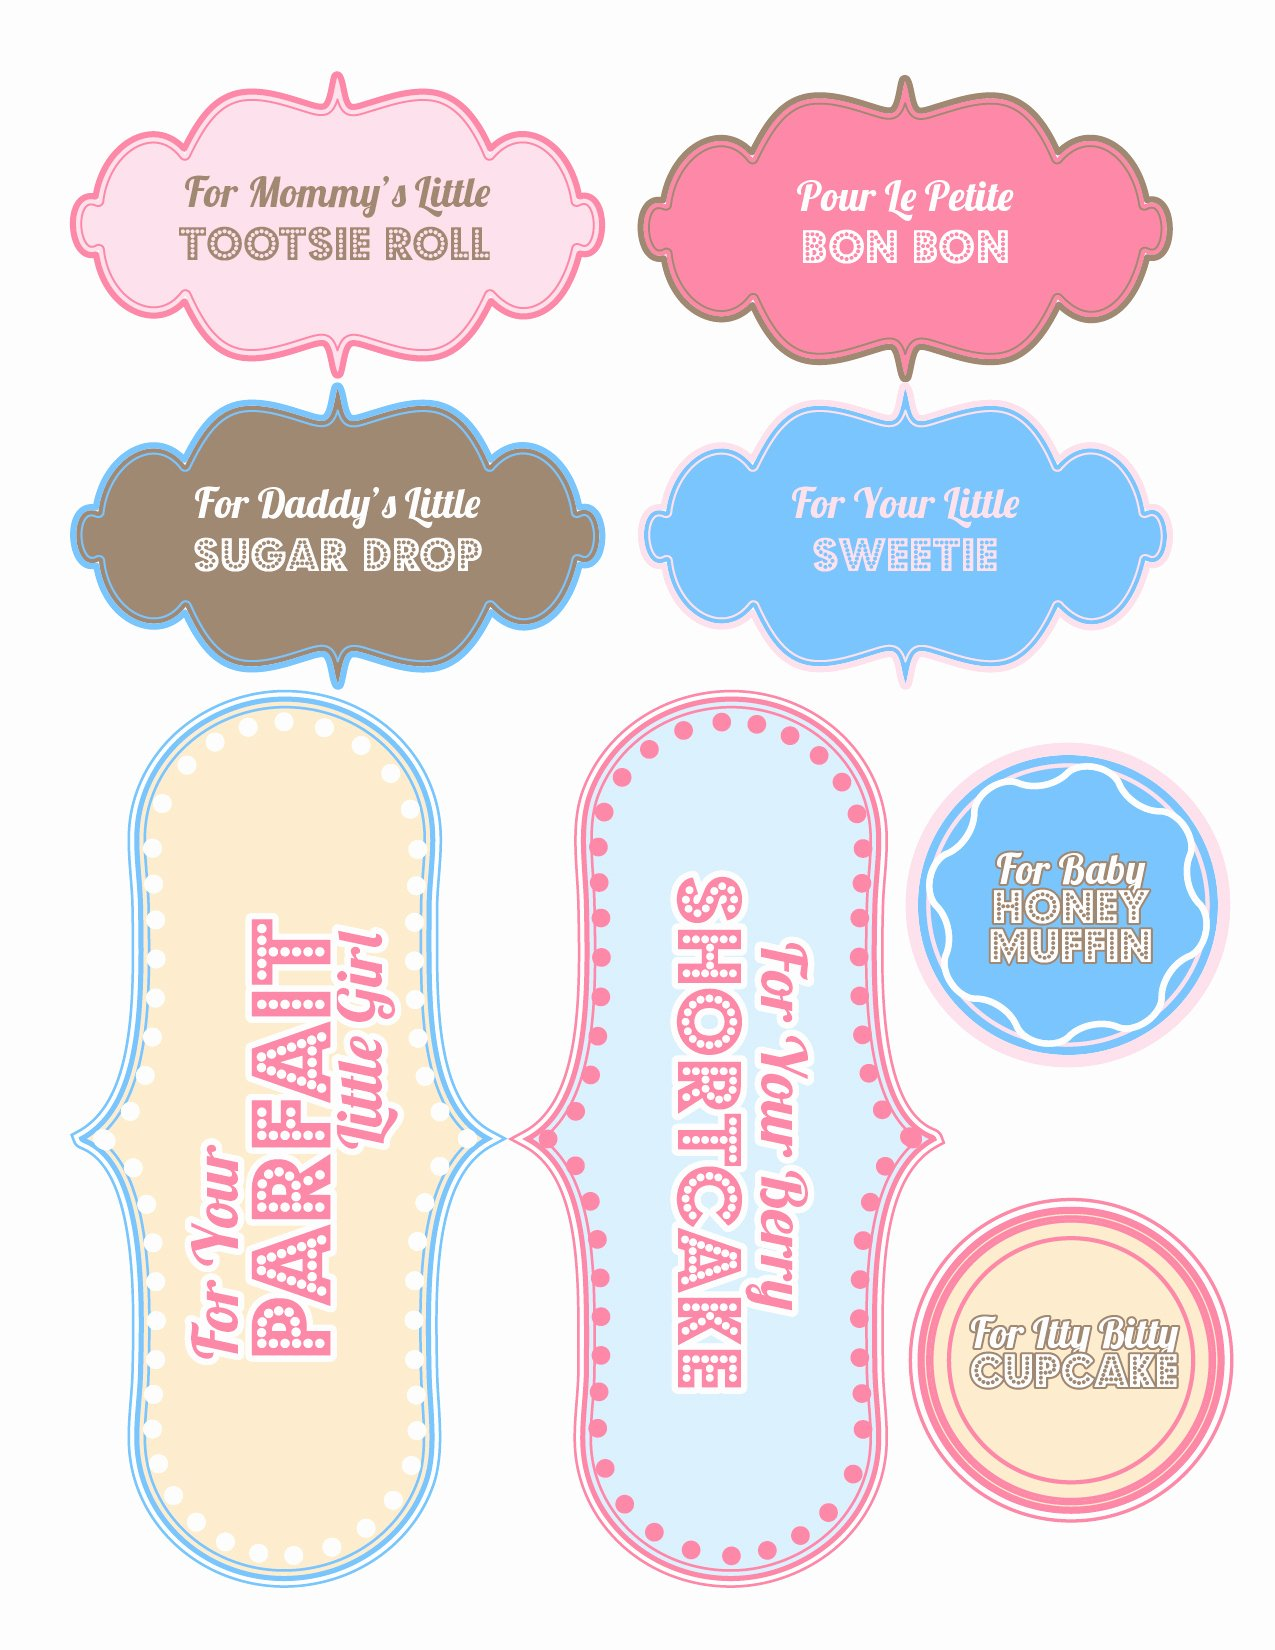 Baby Shower Gift List Template Unique Baby Shower Gifts [free Printable] Sweet Anne Designs